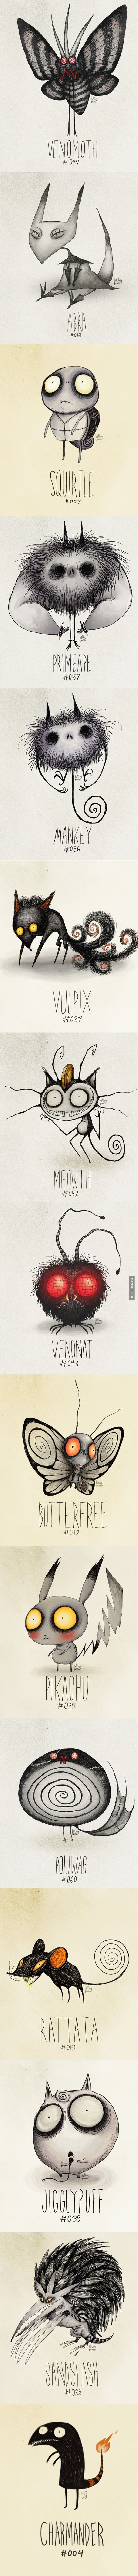 Tim Burton's Pokemon - i love this artworks is someone finds who has made them plz msg if possible